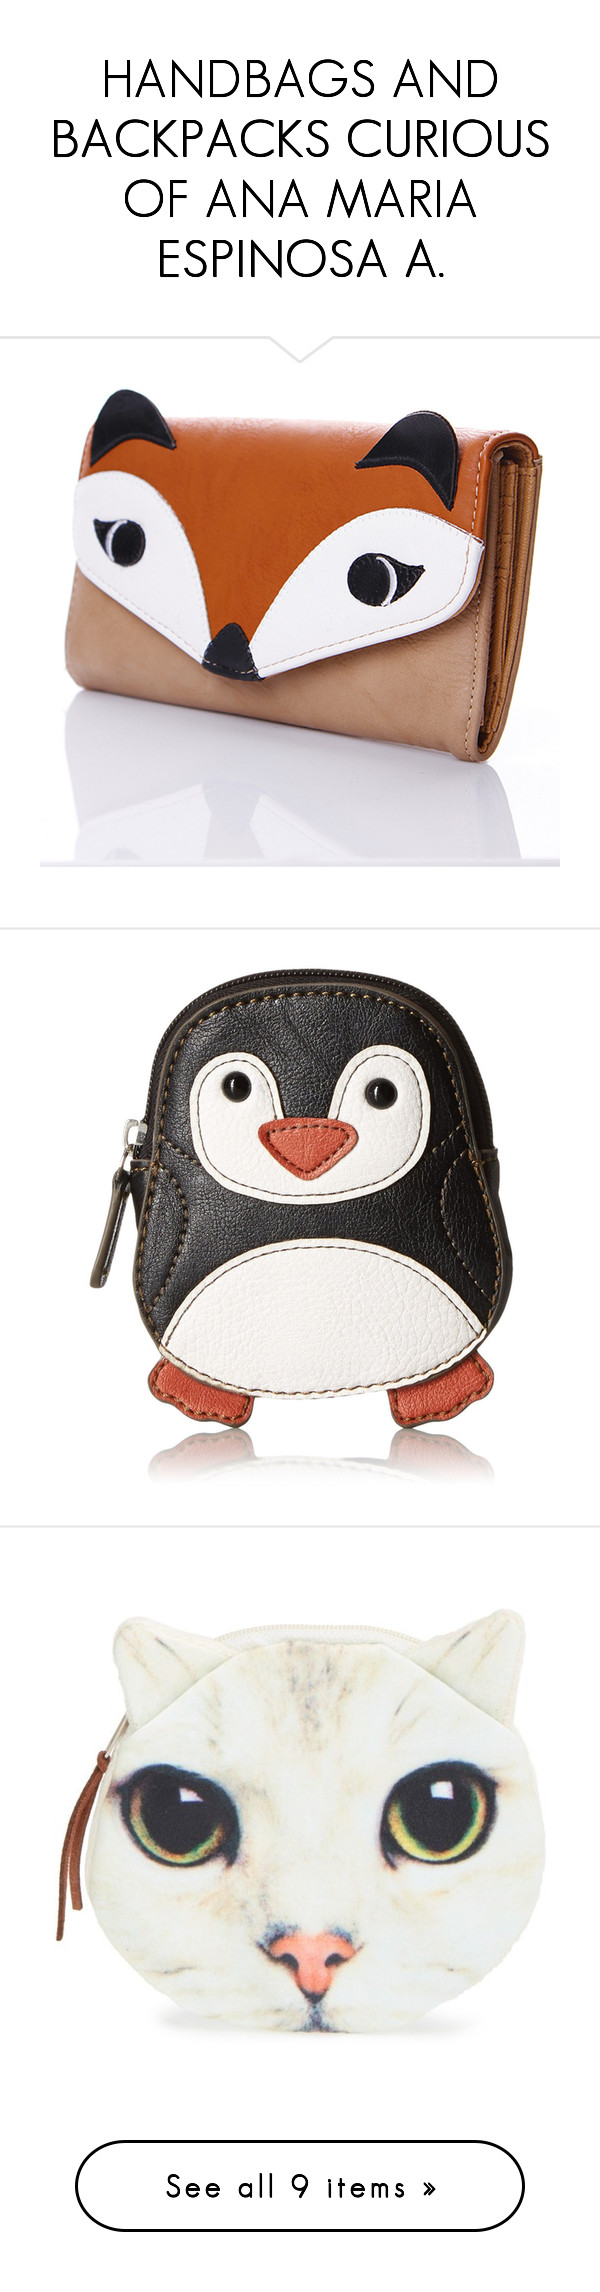 """""""HANDBAGS AND BACKPACKS CURIOUS OF ANA MARIA ESPINOSA A."""" by anamariapaula ❤ liked on Polyvore featuring bags, wallets, beige wallet, fox wallet, flap bag, beige bag, flap wallet, coin purse, white coin purse and coin pouch wallet"""